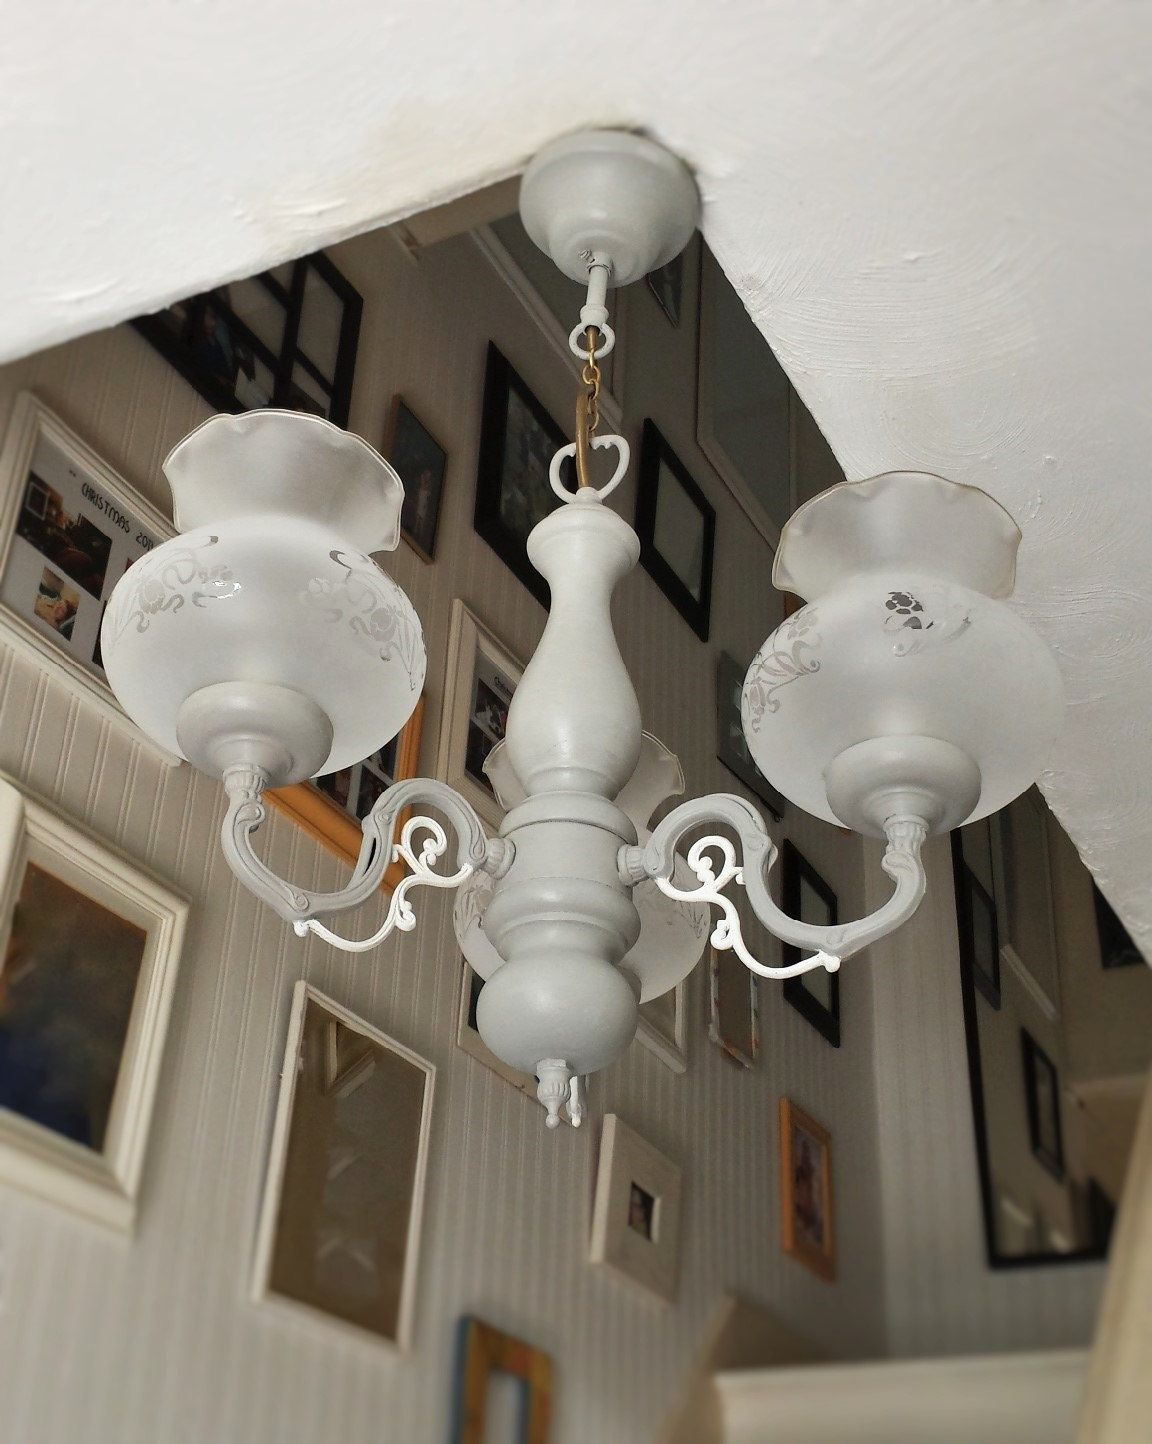 shabby chic lighting. Shabby Chic Lighting Fixtures. Chandelier Light Fixture, Gorgeous Paris Grey With Old White Detail 4